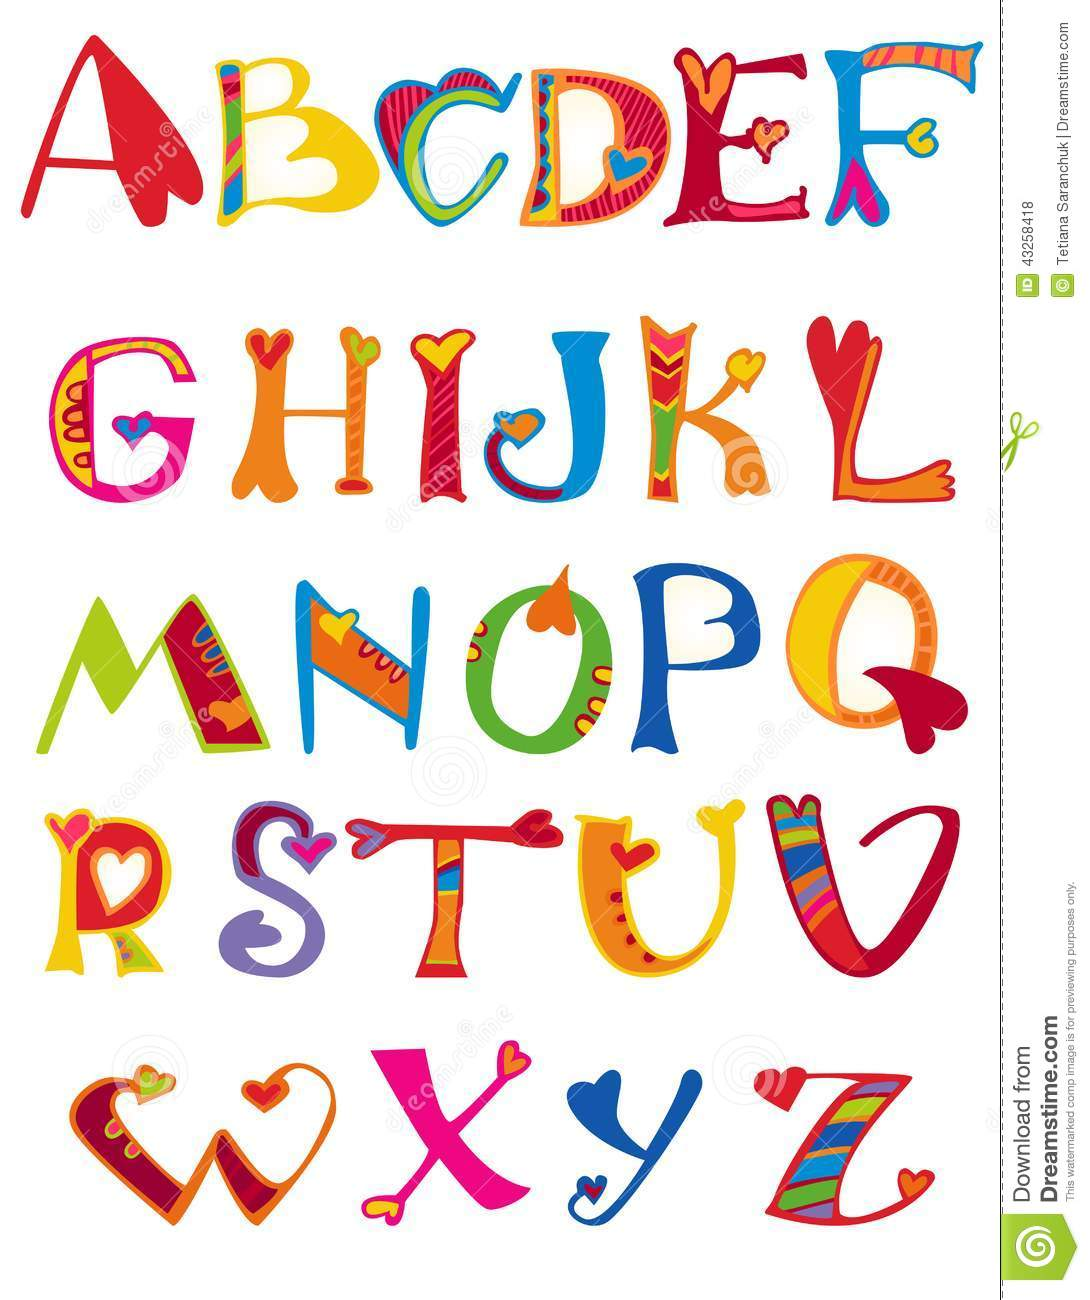 Alphabet Design In A Colorful Style. Stock Vector - Image: 43258418